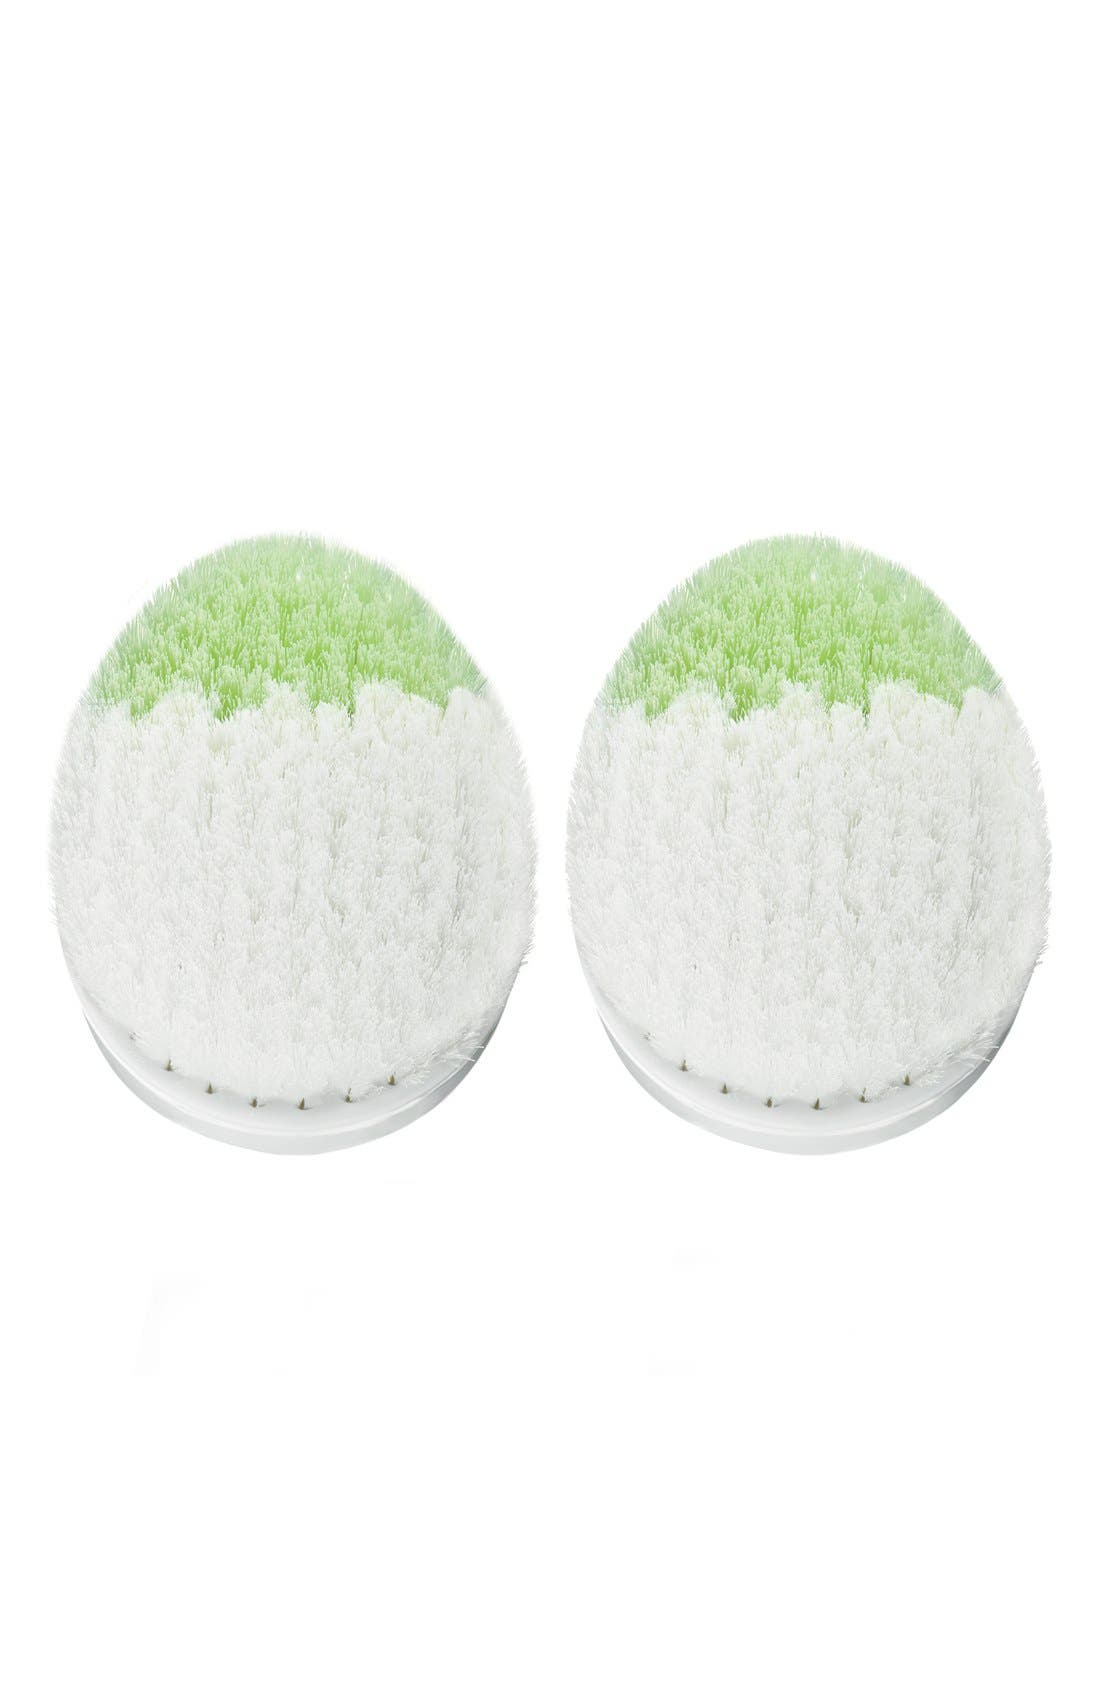 Clinique 'Sonic System' Purifying Cleansing Brush Head (2-Pack)